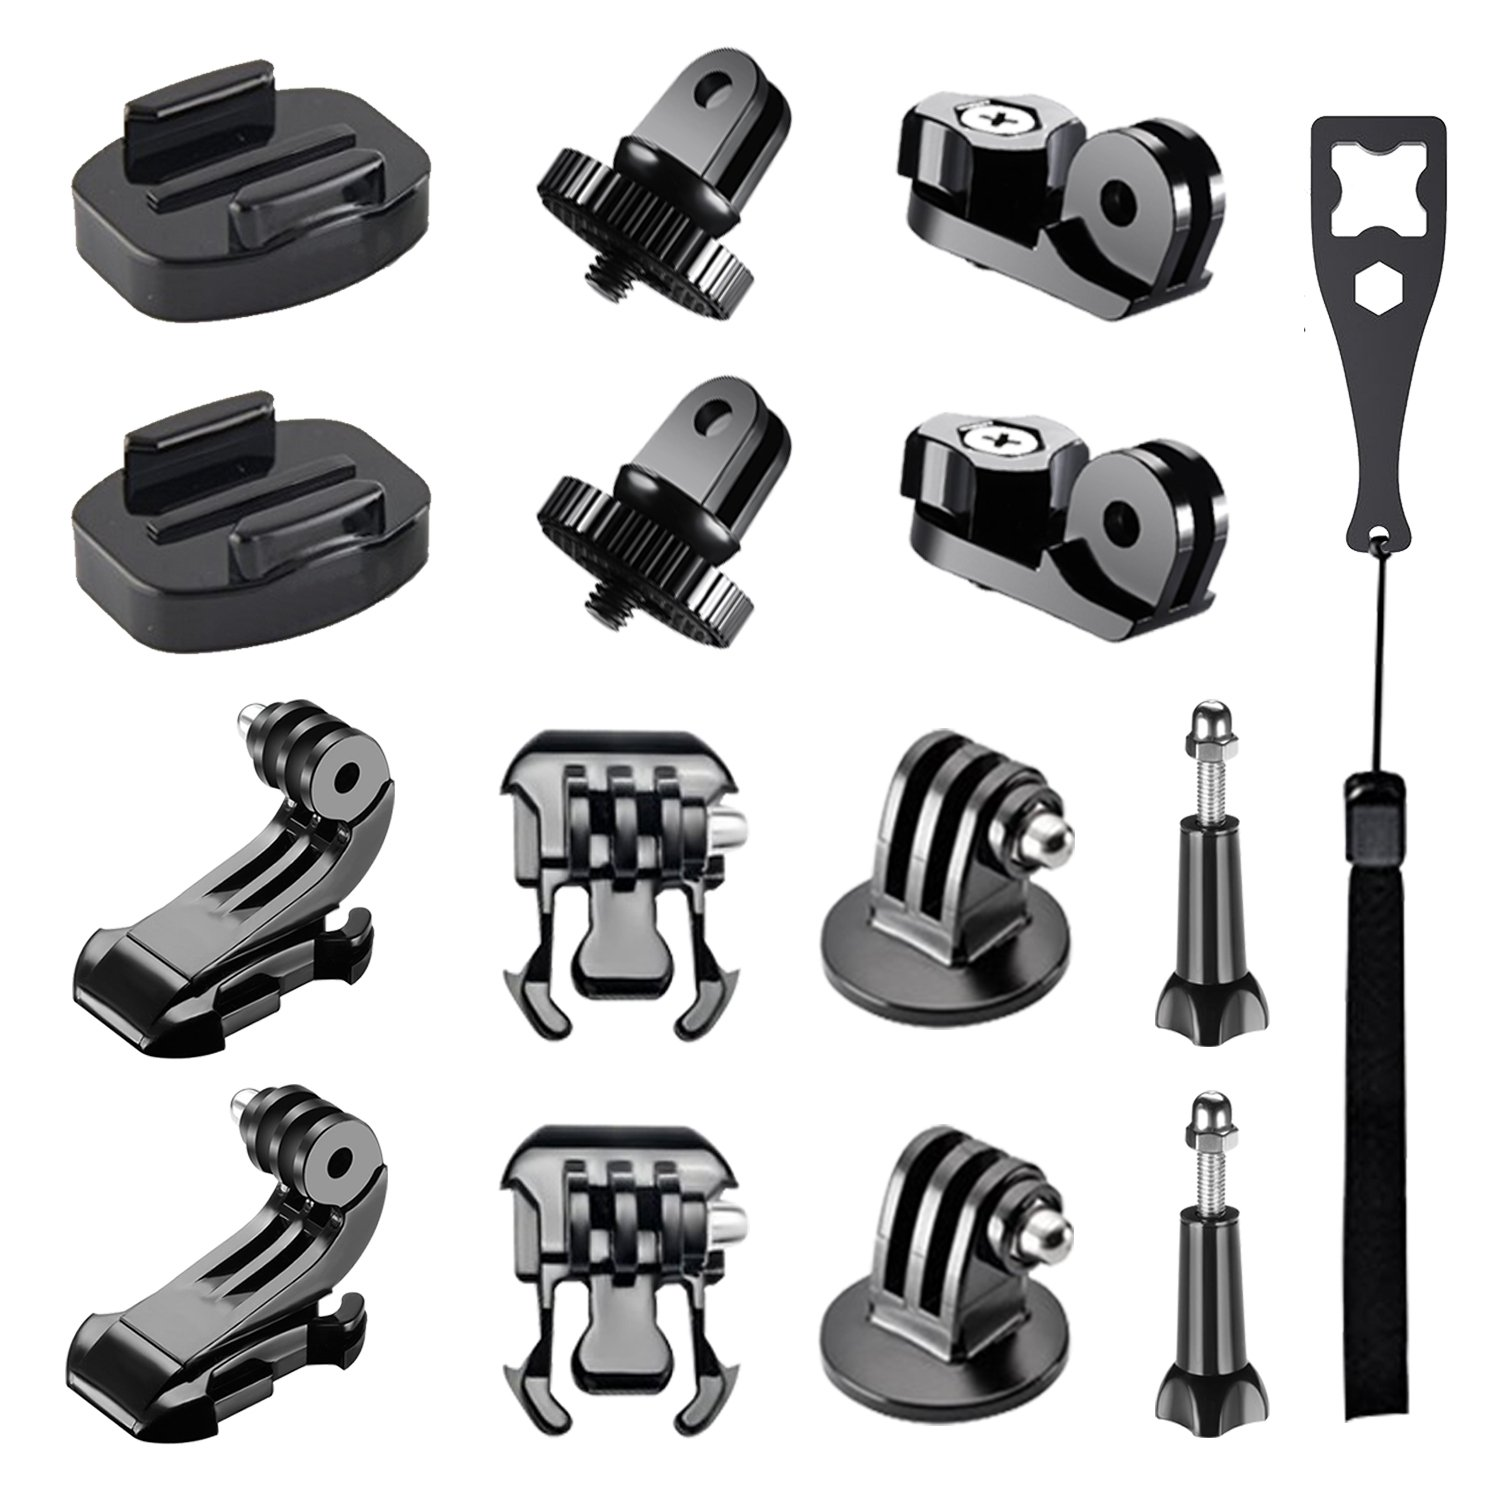 FollowSun 15-in-1 Action Camera Accessories Kit for GoPro Hero/Session/Hero 6 5 4 3+ 3 2 1, Tripod Mount Adapter, Buckle Clip Base Mount, J-Hook Buckle, Thumb Screws and Universal Conversion Adapters